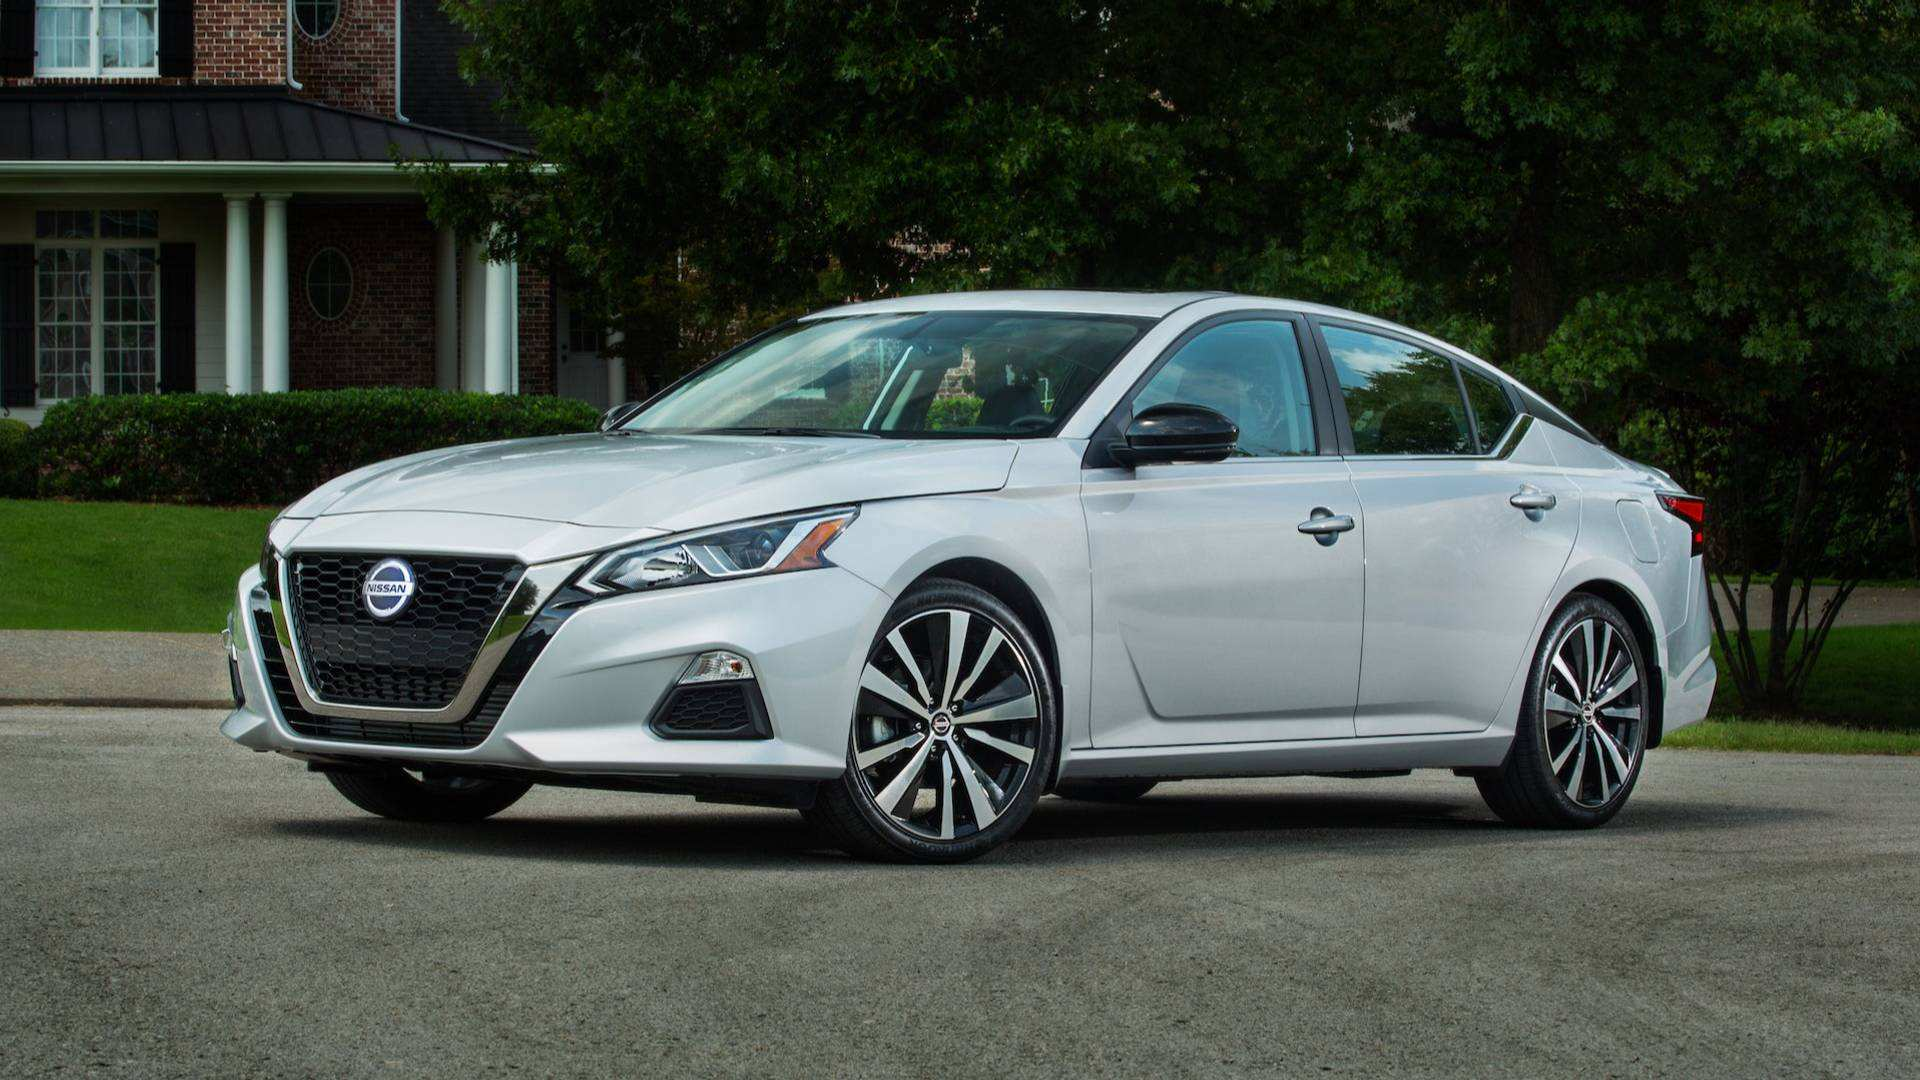 78 The The 2019 Nissan Altima Horsepower First Drive Images by The 2019 Nissan Altima Horsepower First Drive